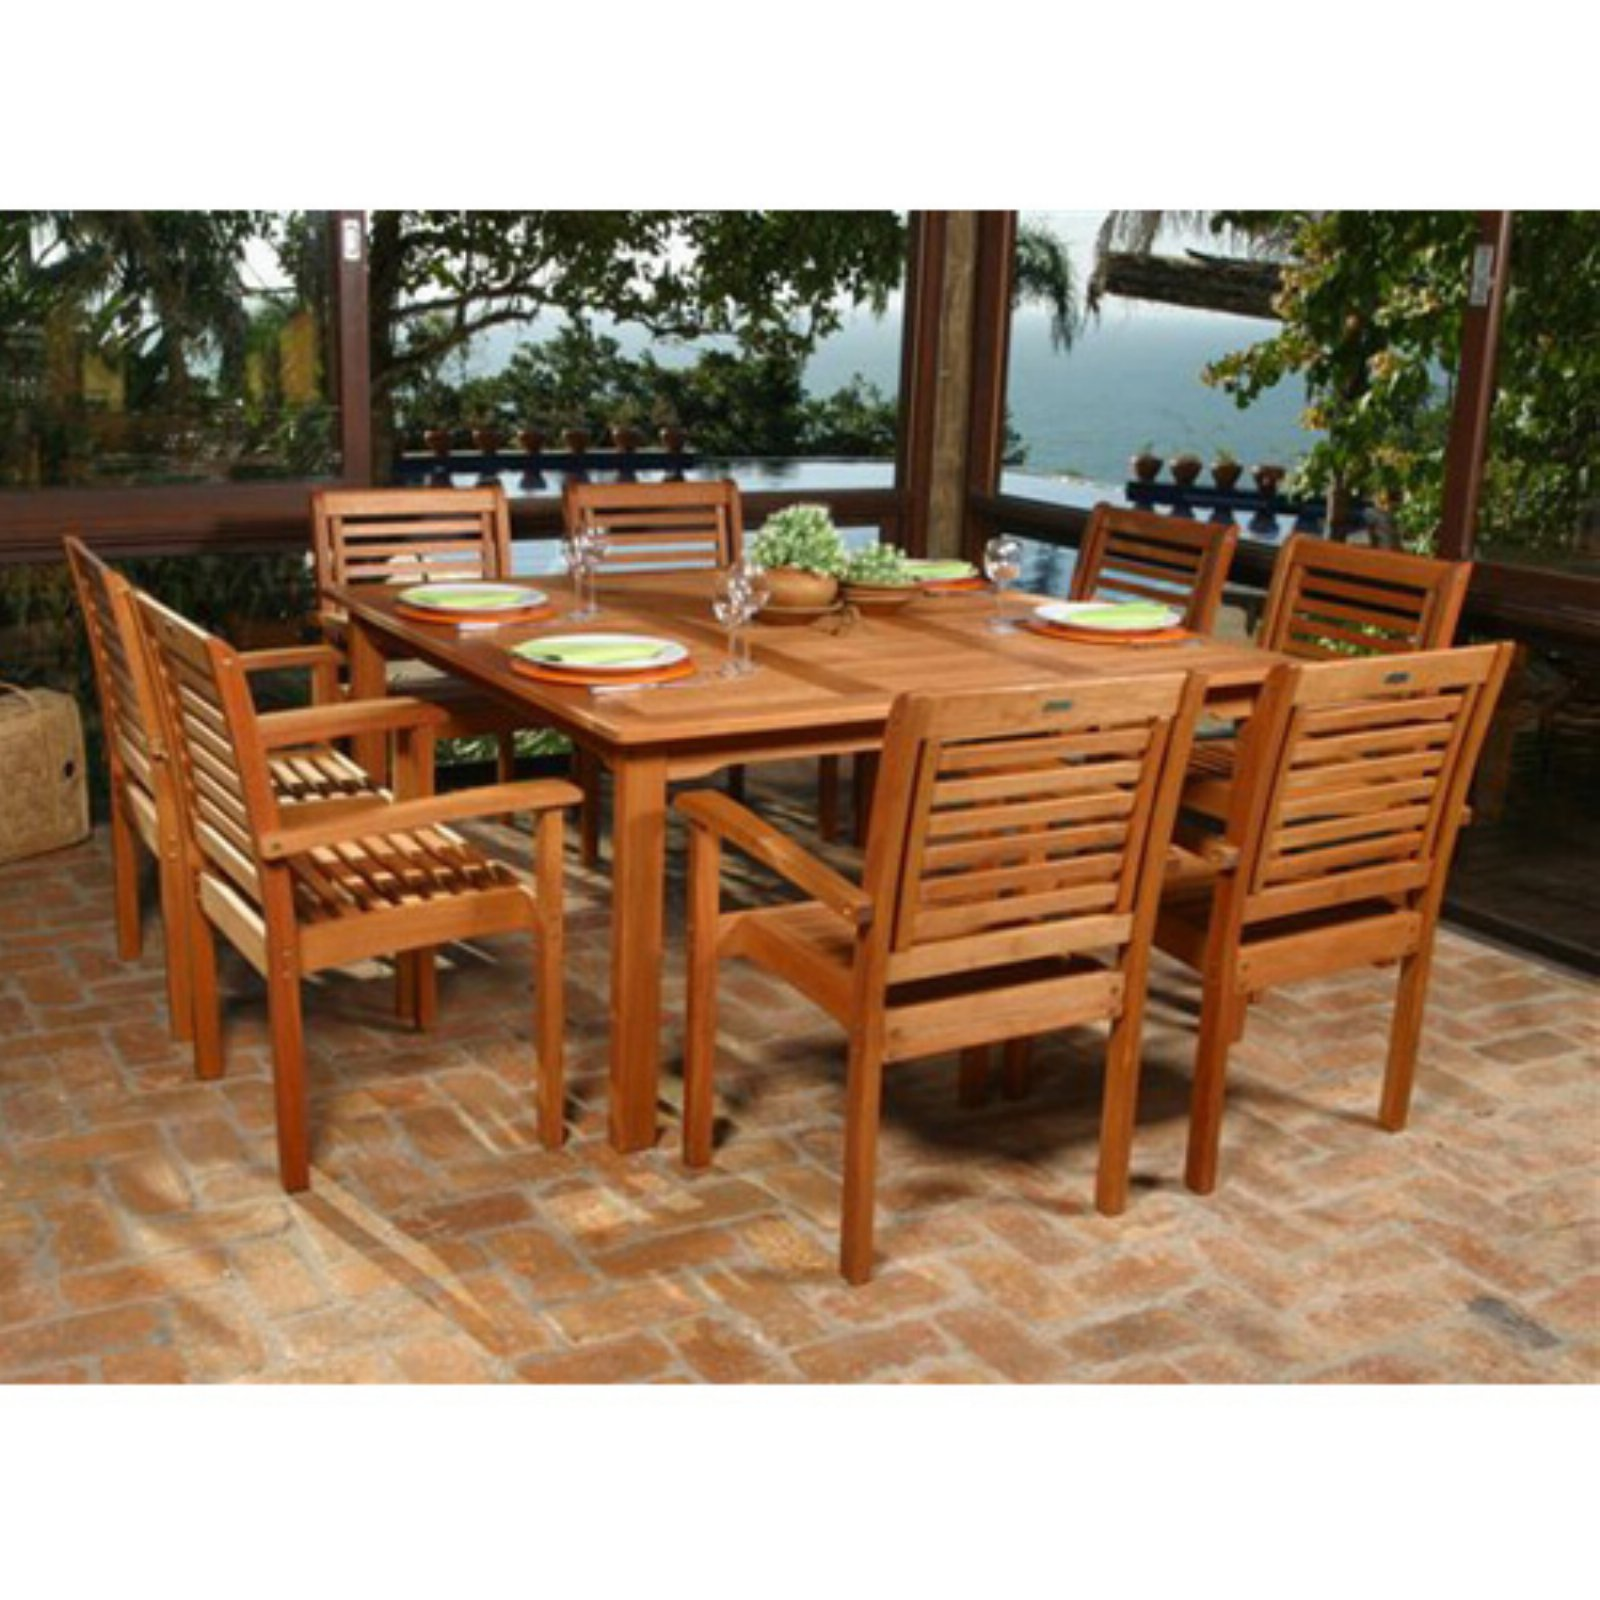 Milano Eucalyptus Square 9-Piece Patio Dining Set, Brown